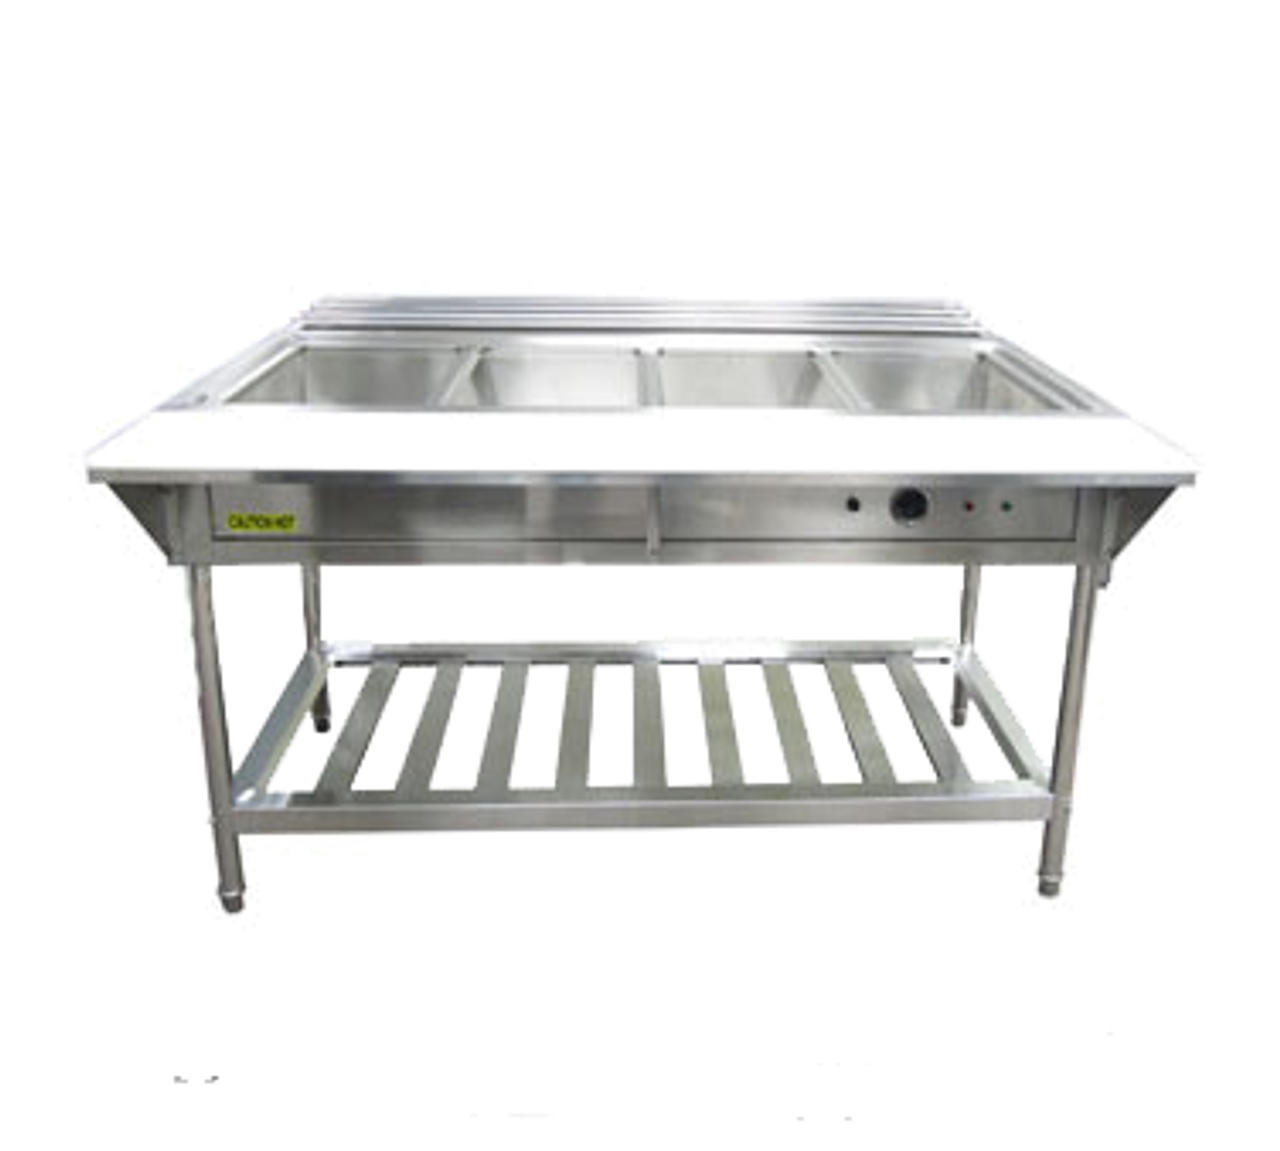 """Water Bath Steam Table, 57-1/4""""W x 26""""D x 34-1/4""""H, 4-compartment, 12"""" x 20"""" x  8-1/2"""" deep wells, thermostatic control dial, low water cutoff sensor with reset button, 304 stainless steel fully welded water pan, single heating element, 3/4"""" drainage pipe, adjustable legs with bullet ends, undershelf, stainless steel,   208v/240v/60/1-ph, 3000 watt, 12.5 amp, NEMA 6-20P, CE (ships Knocked-Down)"""